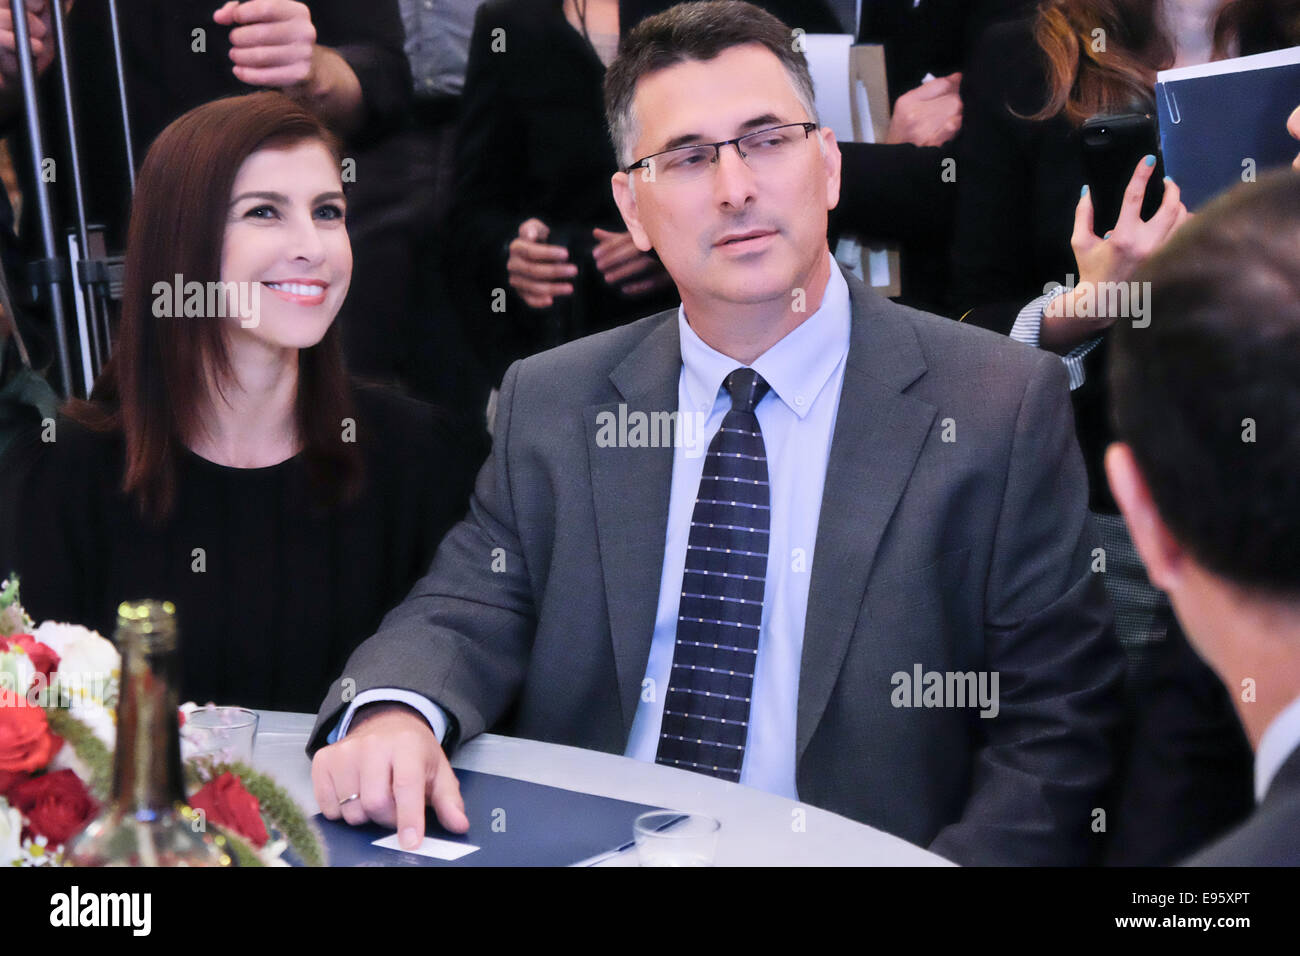 Jerusalem. 20th Oct, 2014. Israeli Minister of Interior, GIDEON SAAR, and wife, GEULA EVEN, arrive to partake in - Stock Image